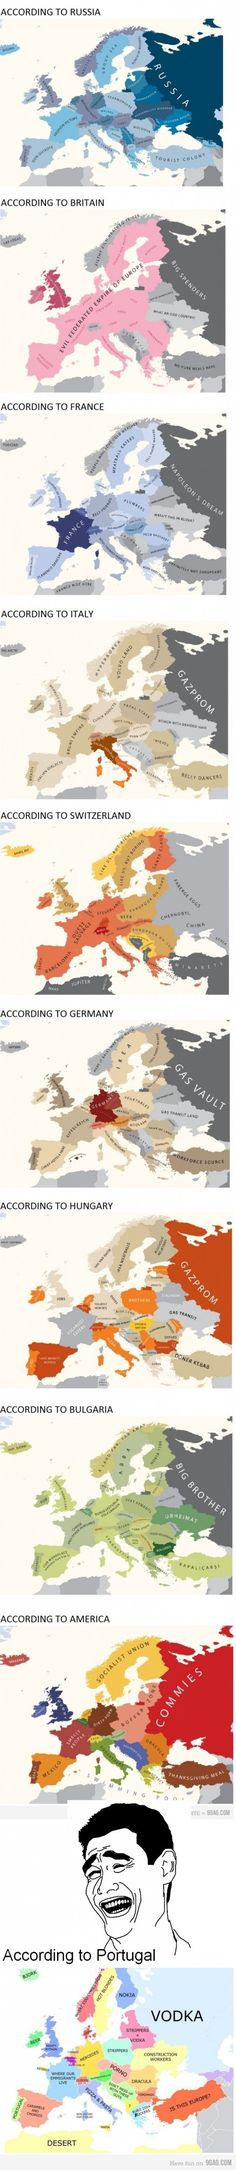 Europe According to... [Fixed]